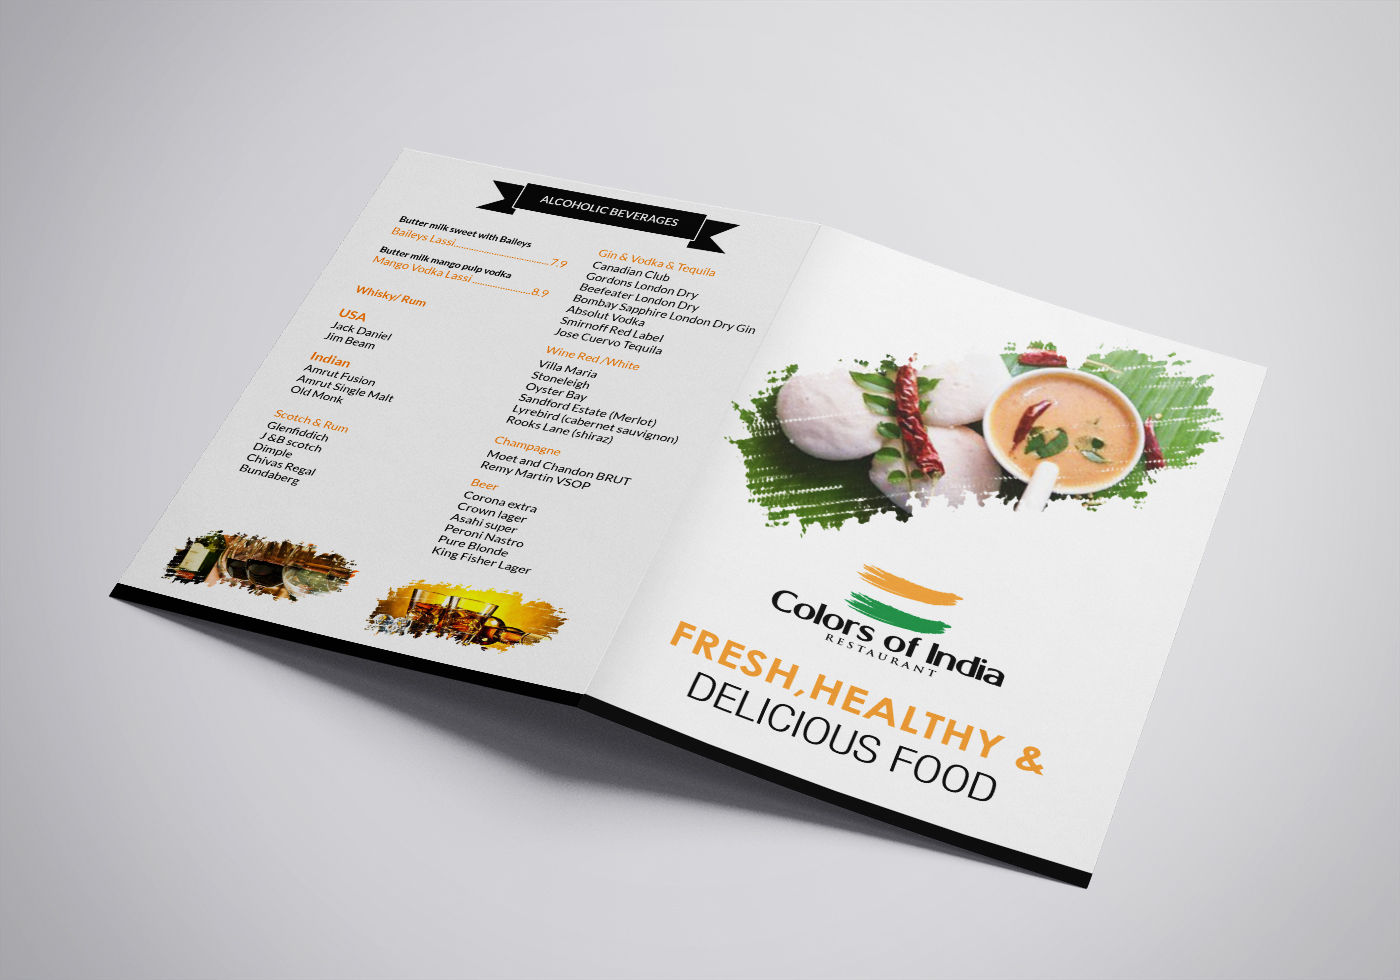 Elegant professional indian restaurant menu design for a